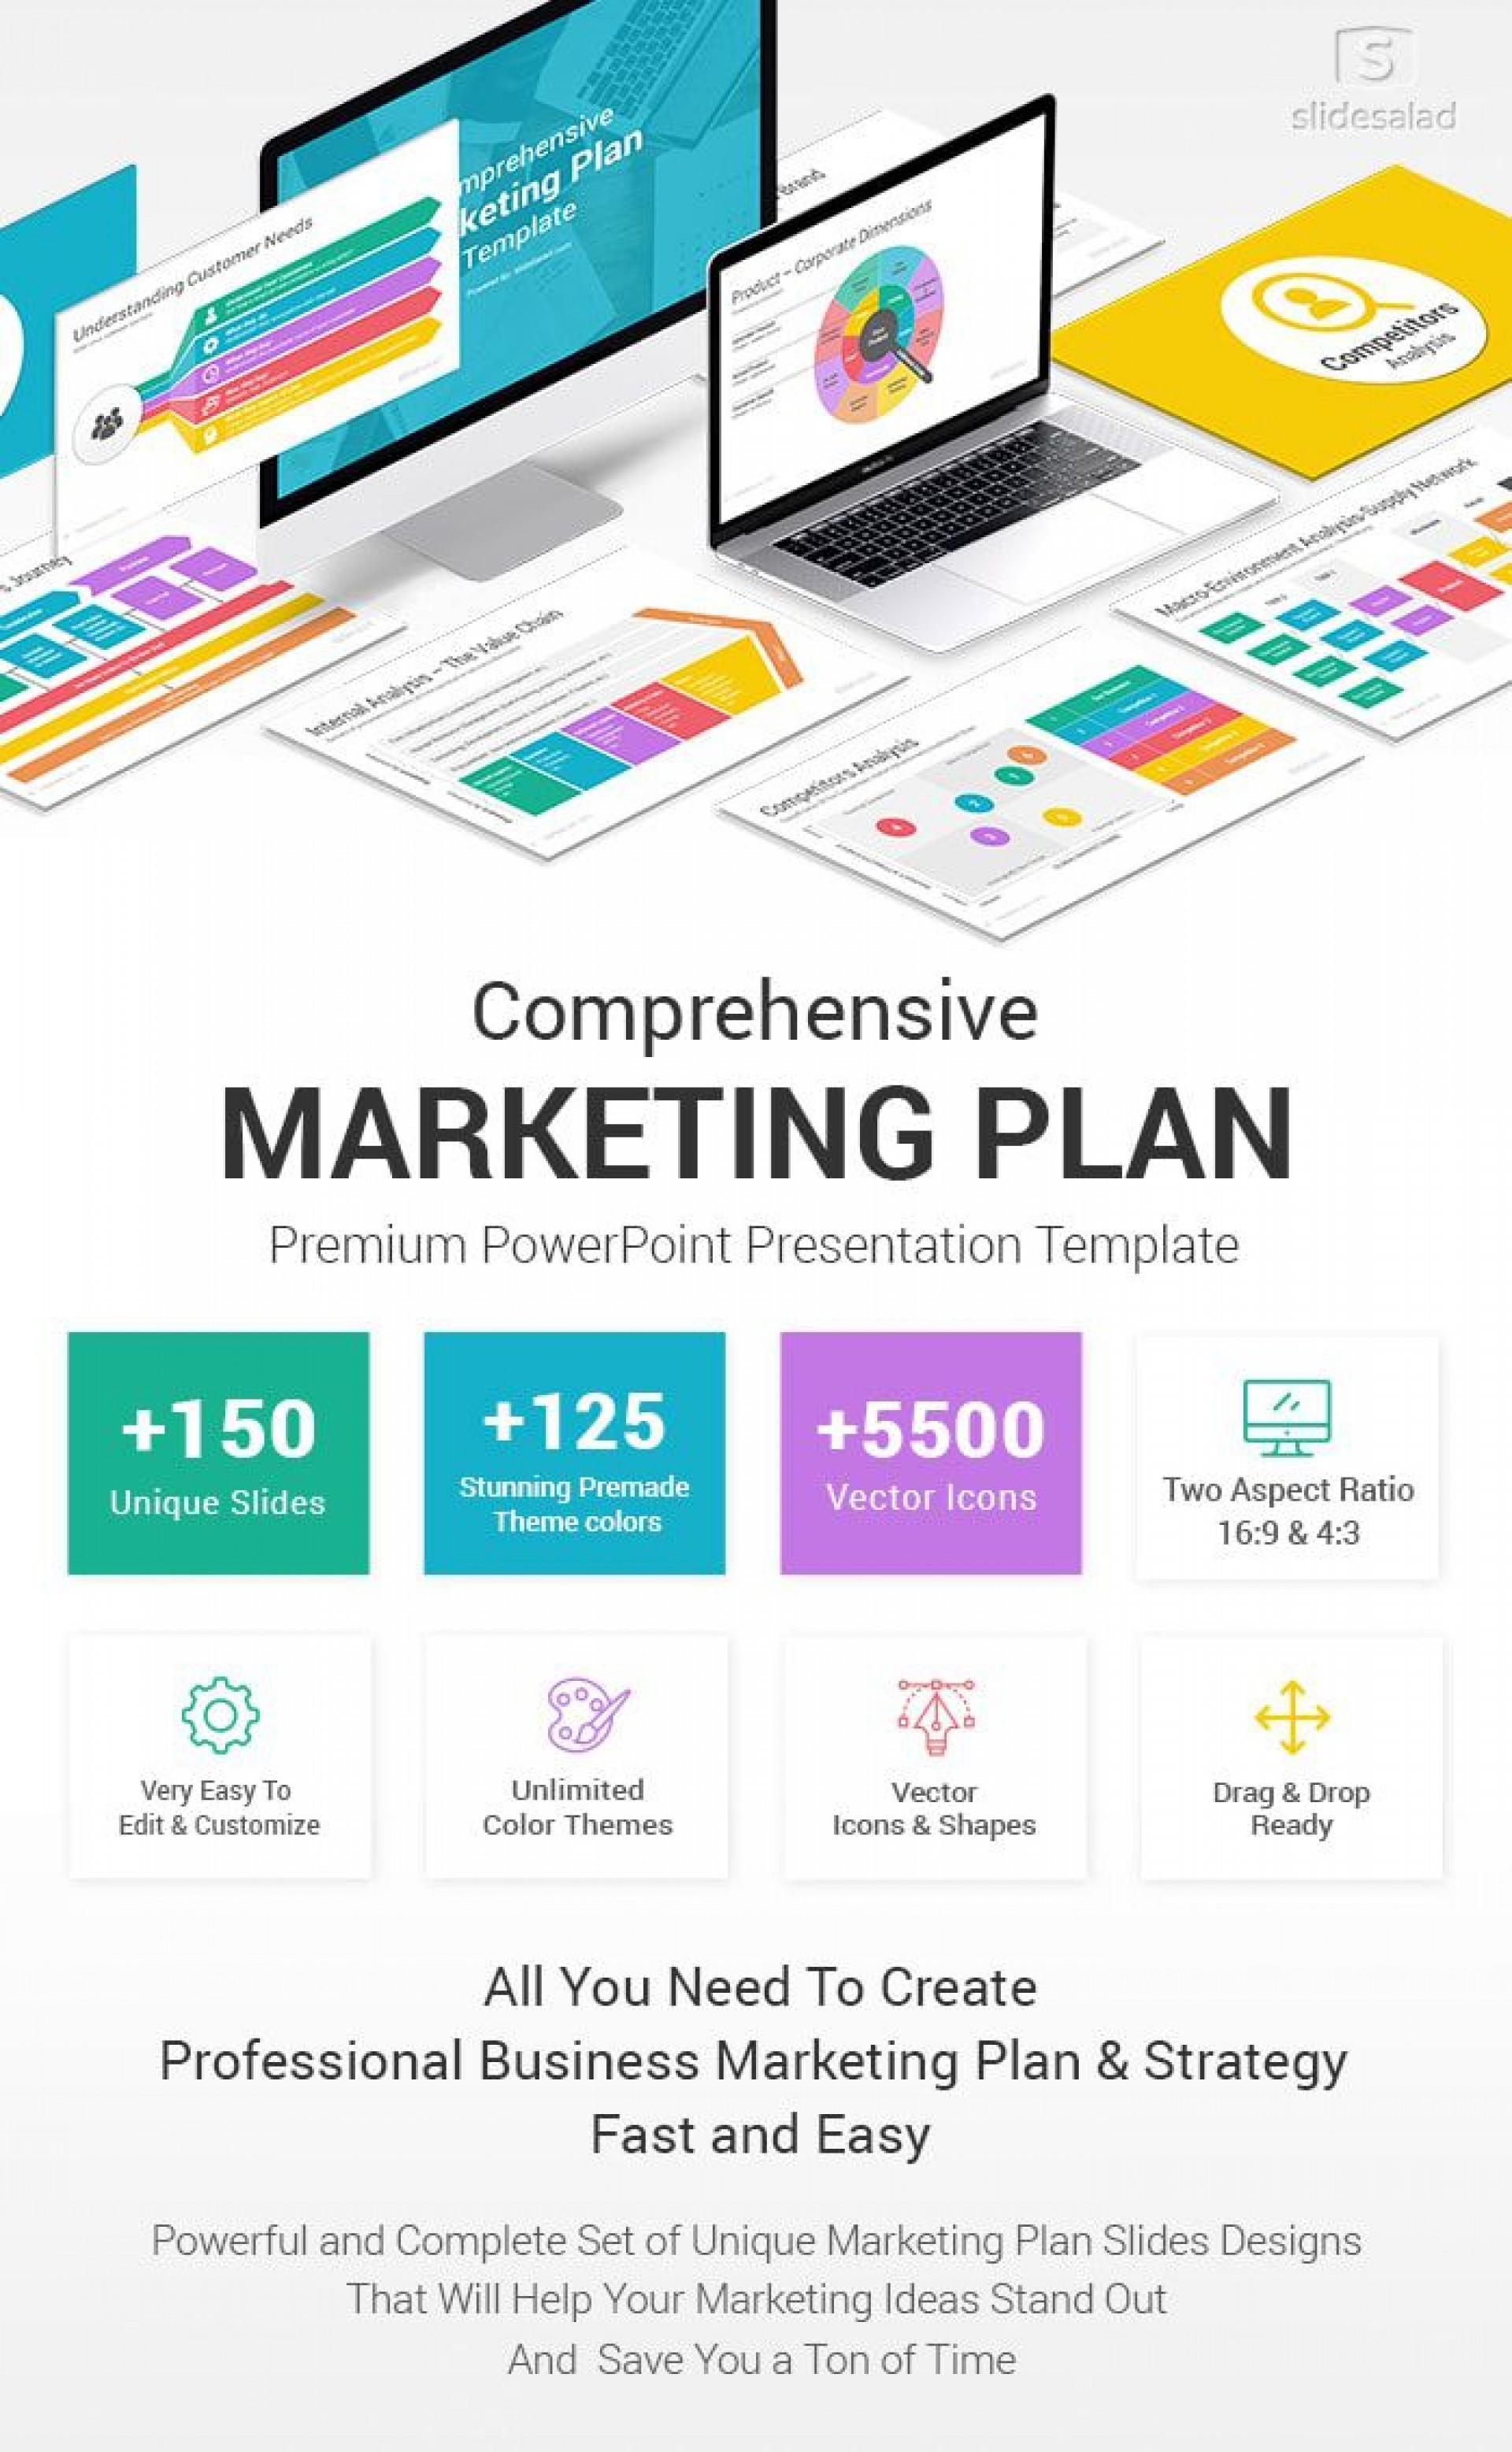 009 Unique Marketing Plan Template Free Powerpoint Inspiration  Download1920